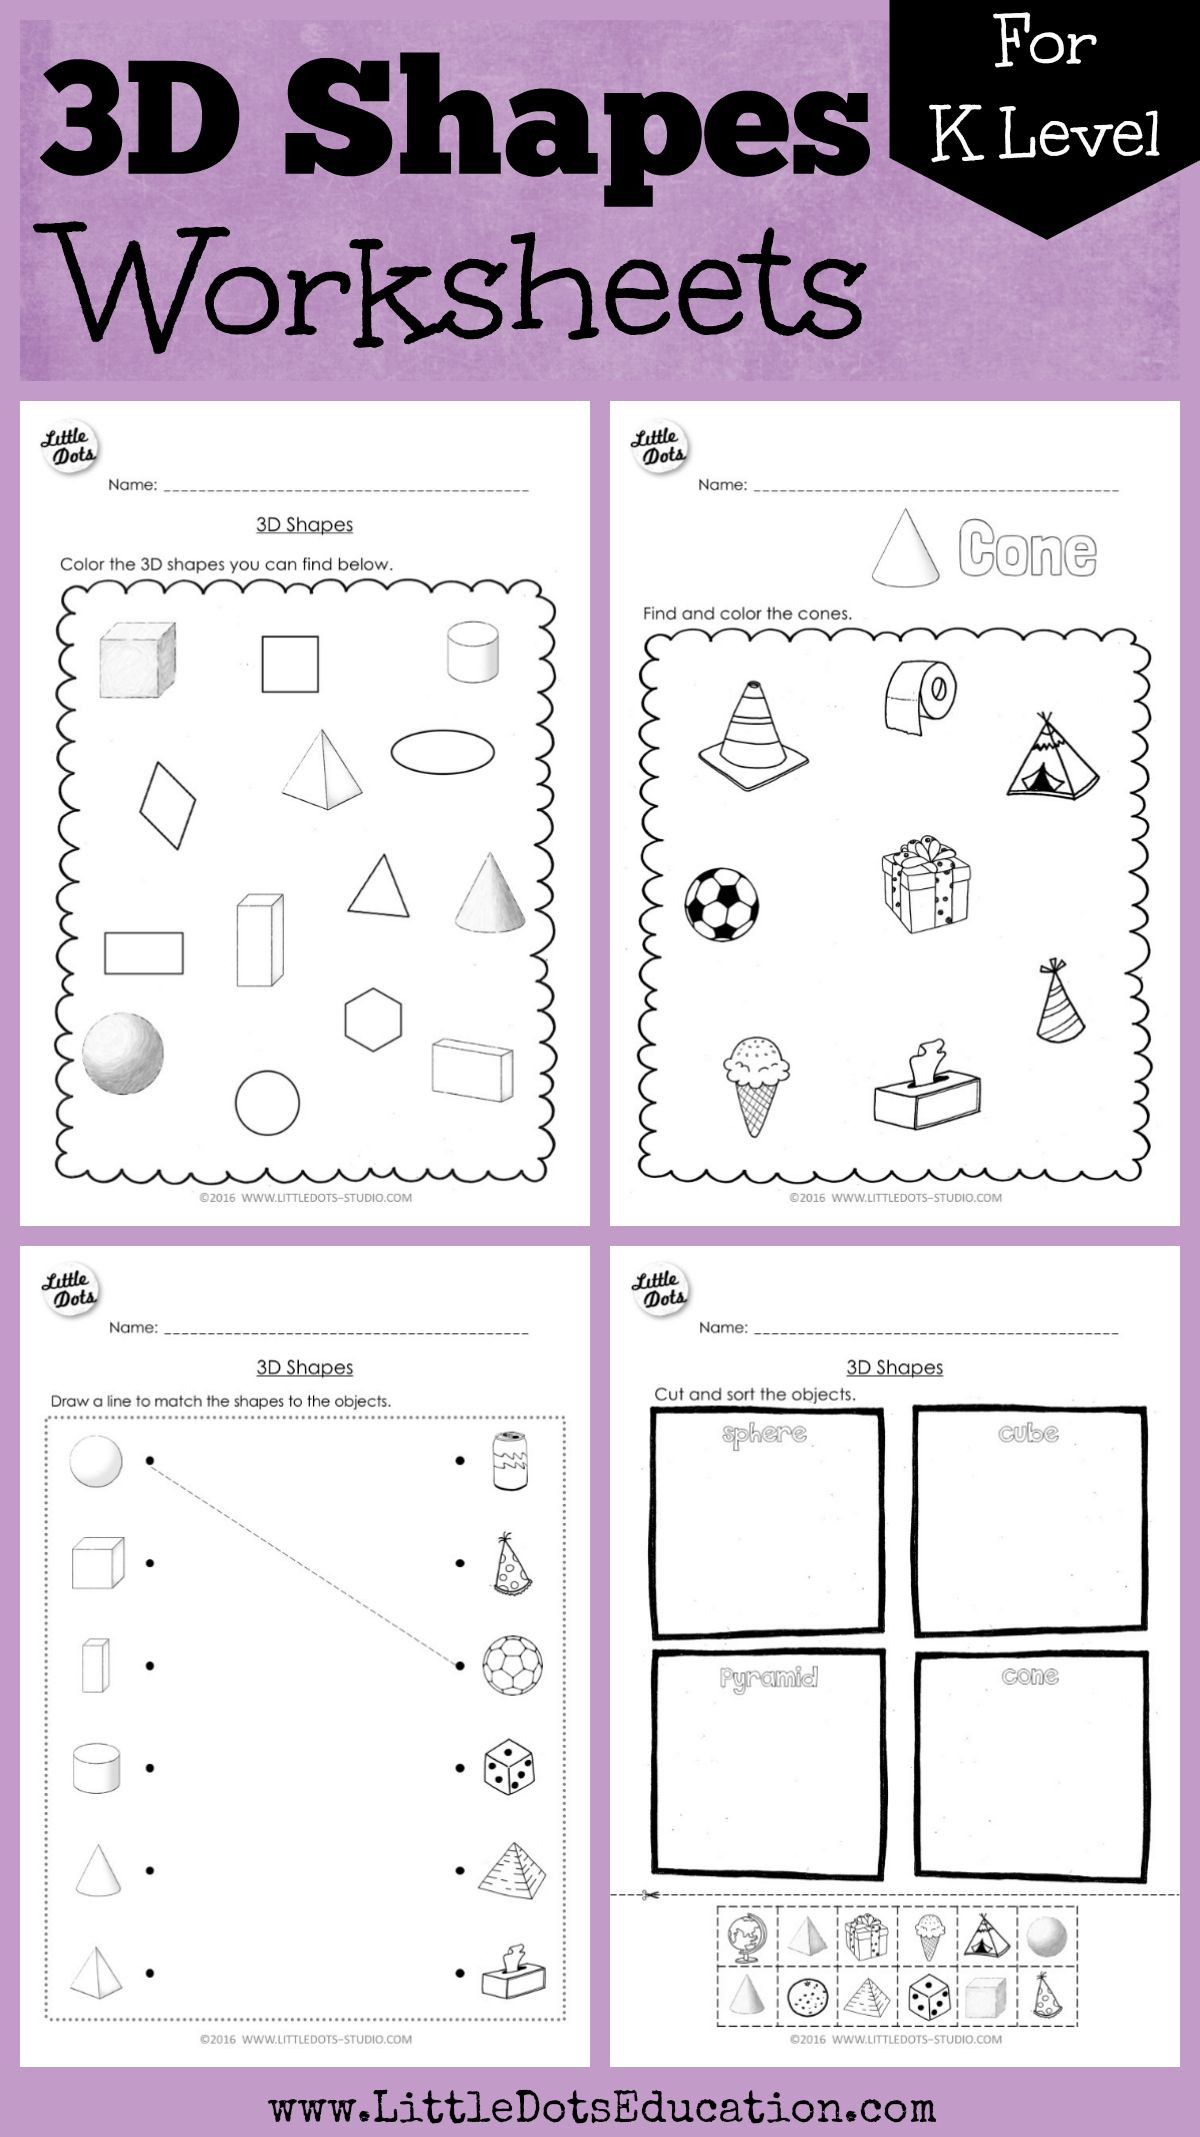 3d Shapes Worksheets 2nd Grade Kindergarten Math 3d Shapes Worksheets and Activities